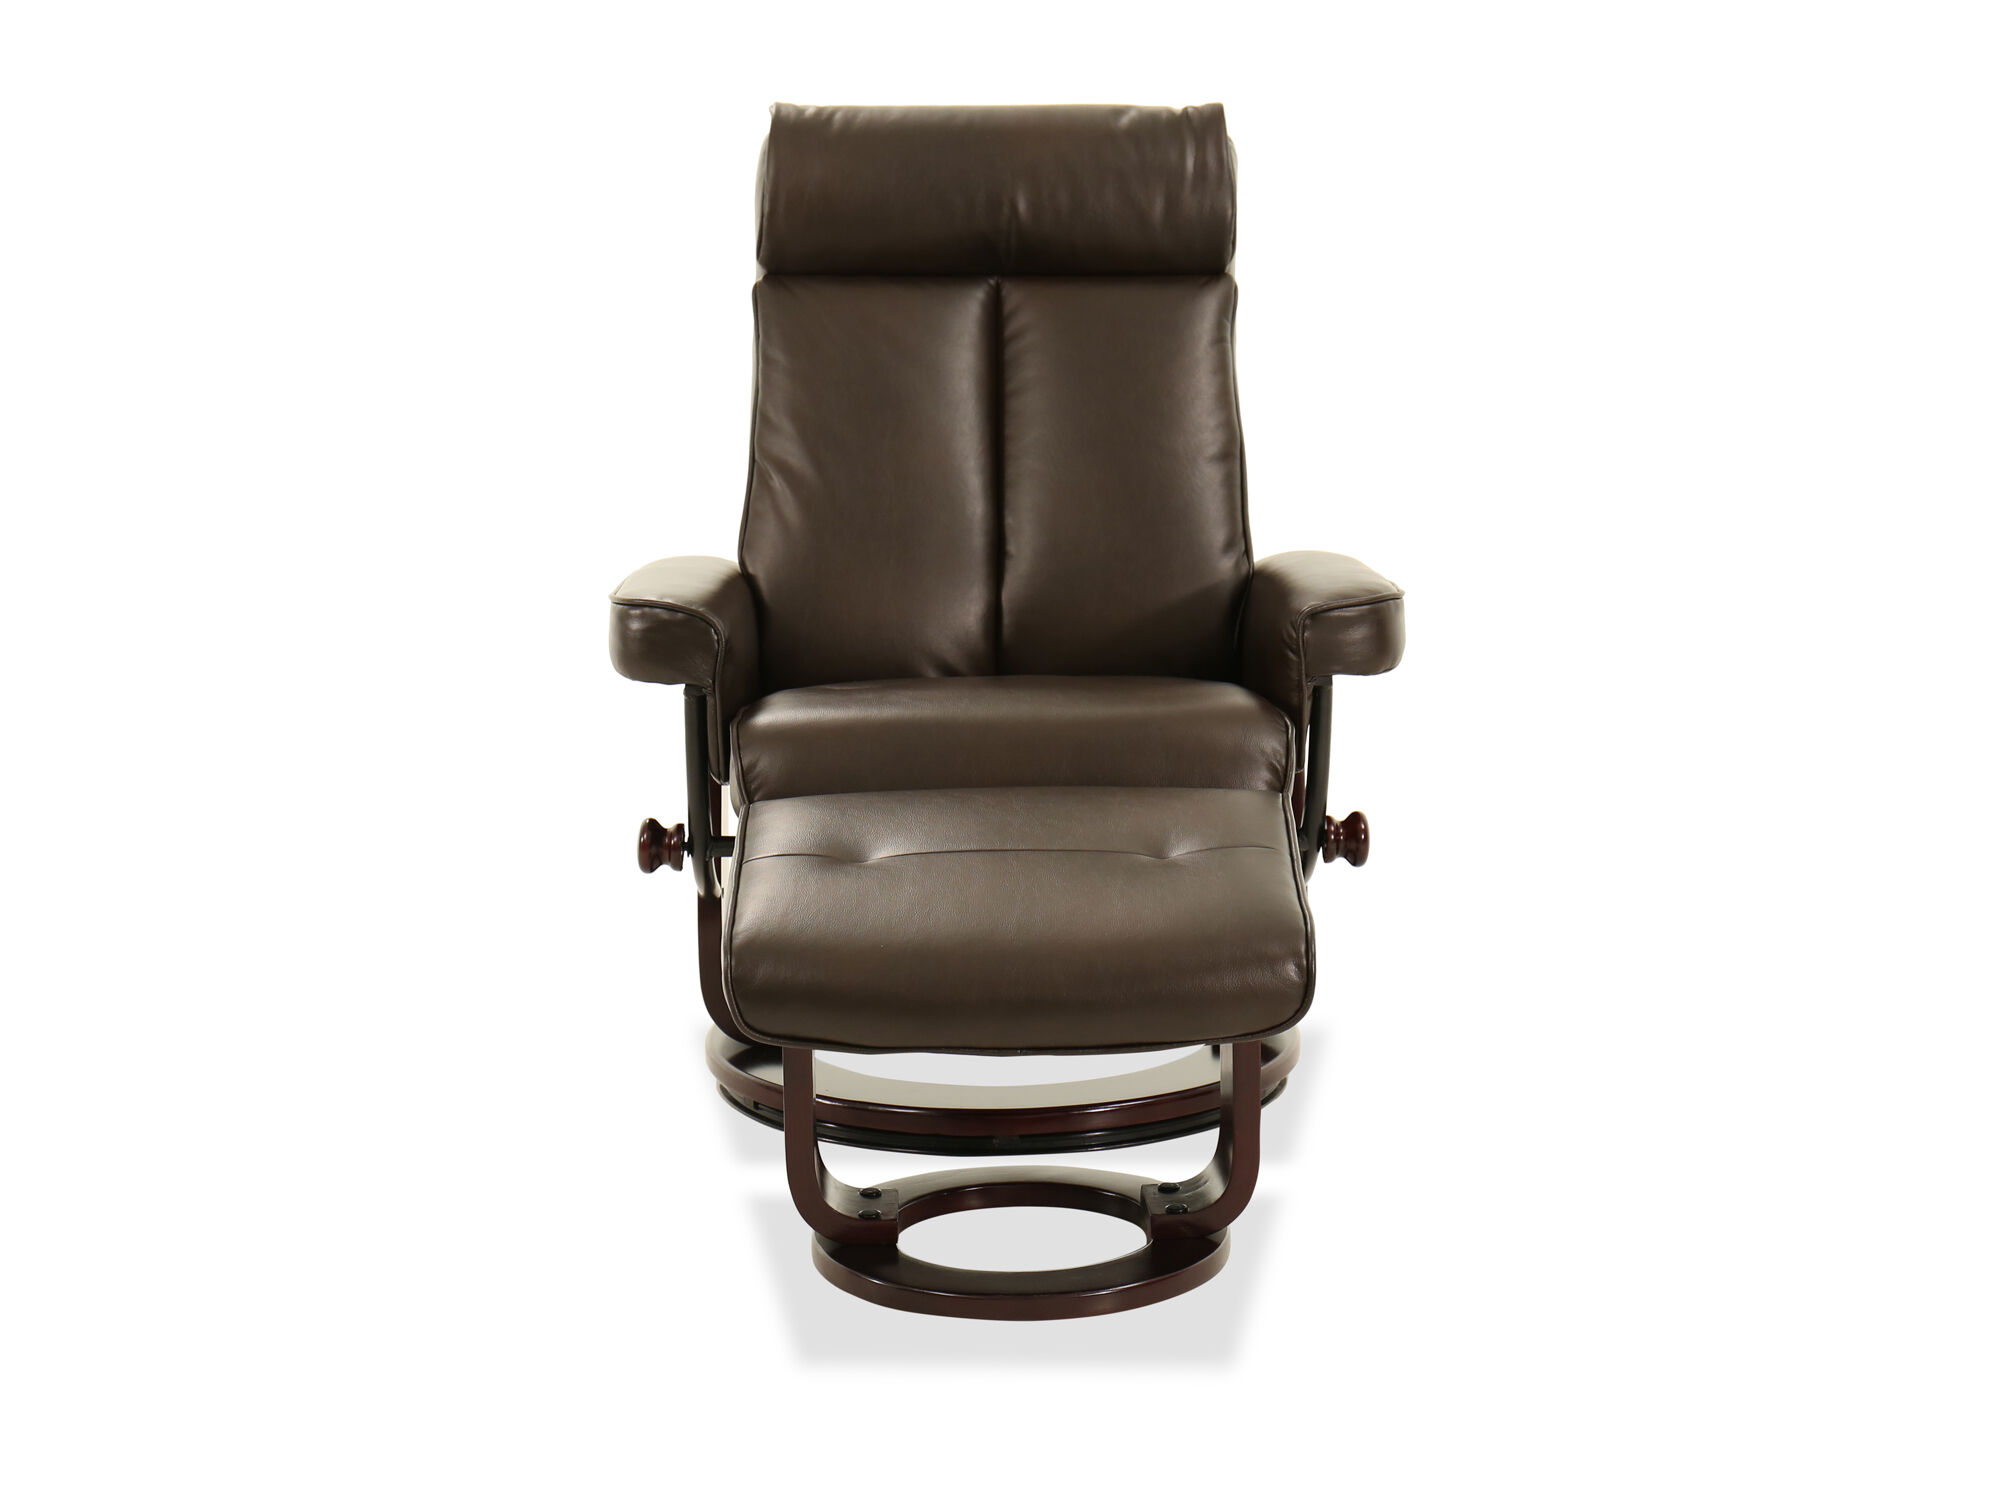 Images Leather Recliner Chair And Ottoman In Brown Leather Recliner Chair  And Ottoman In Brown